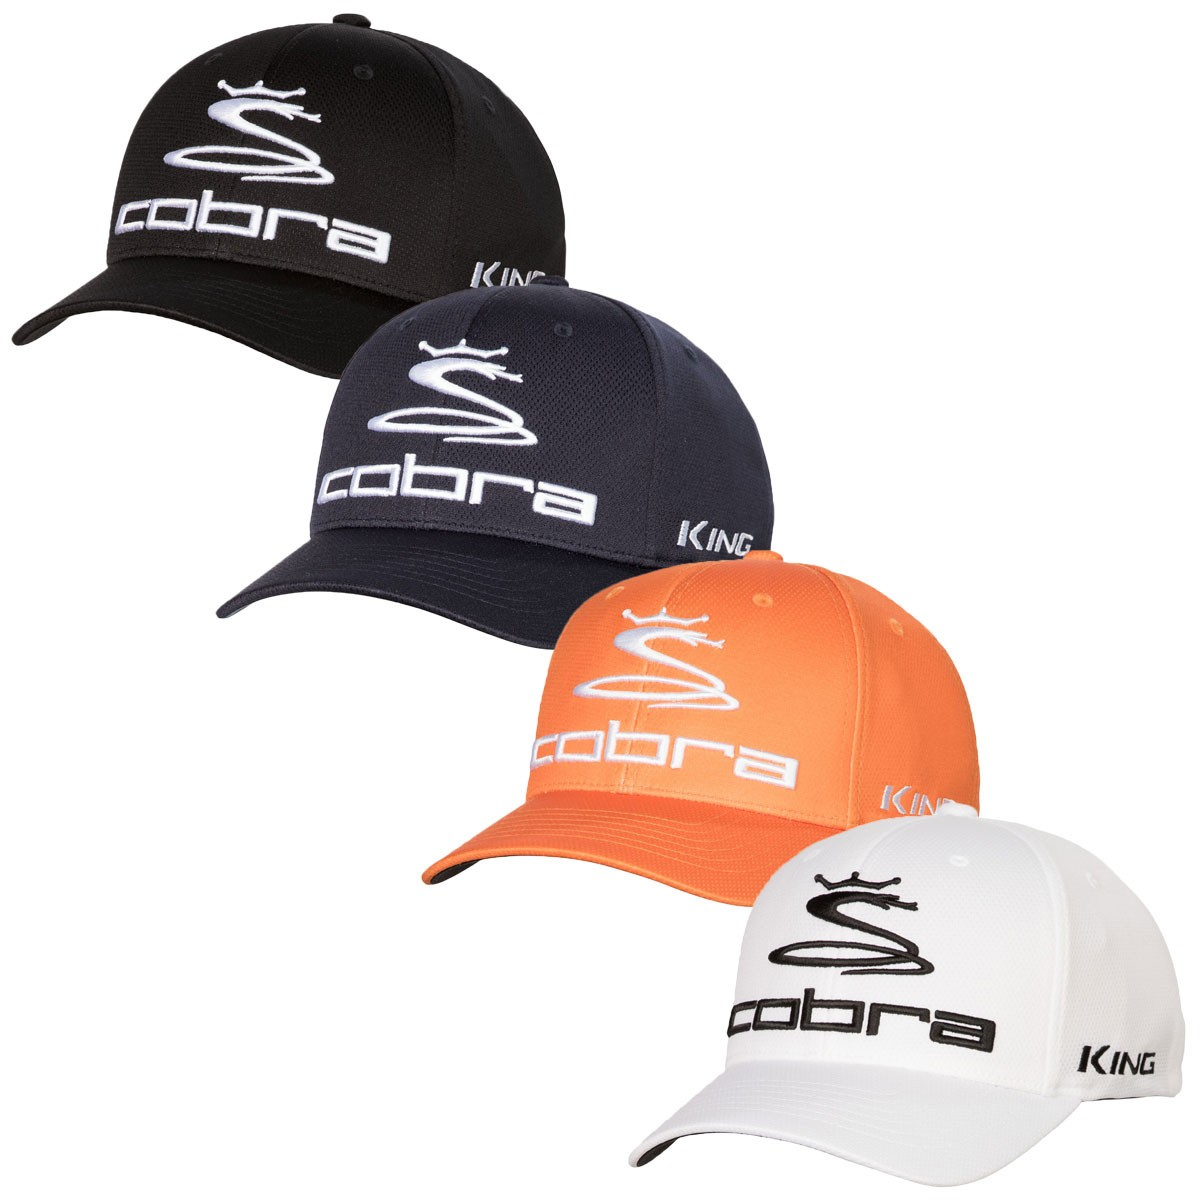 Cobra Golf Mens Flexfit Pro Tour Cap ac13da89ffb